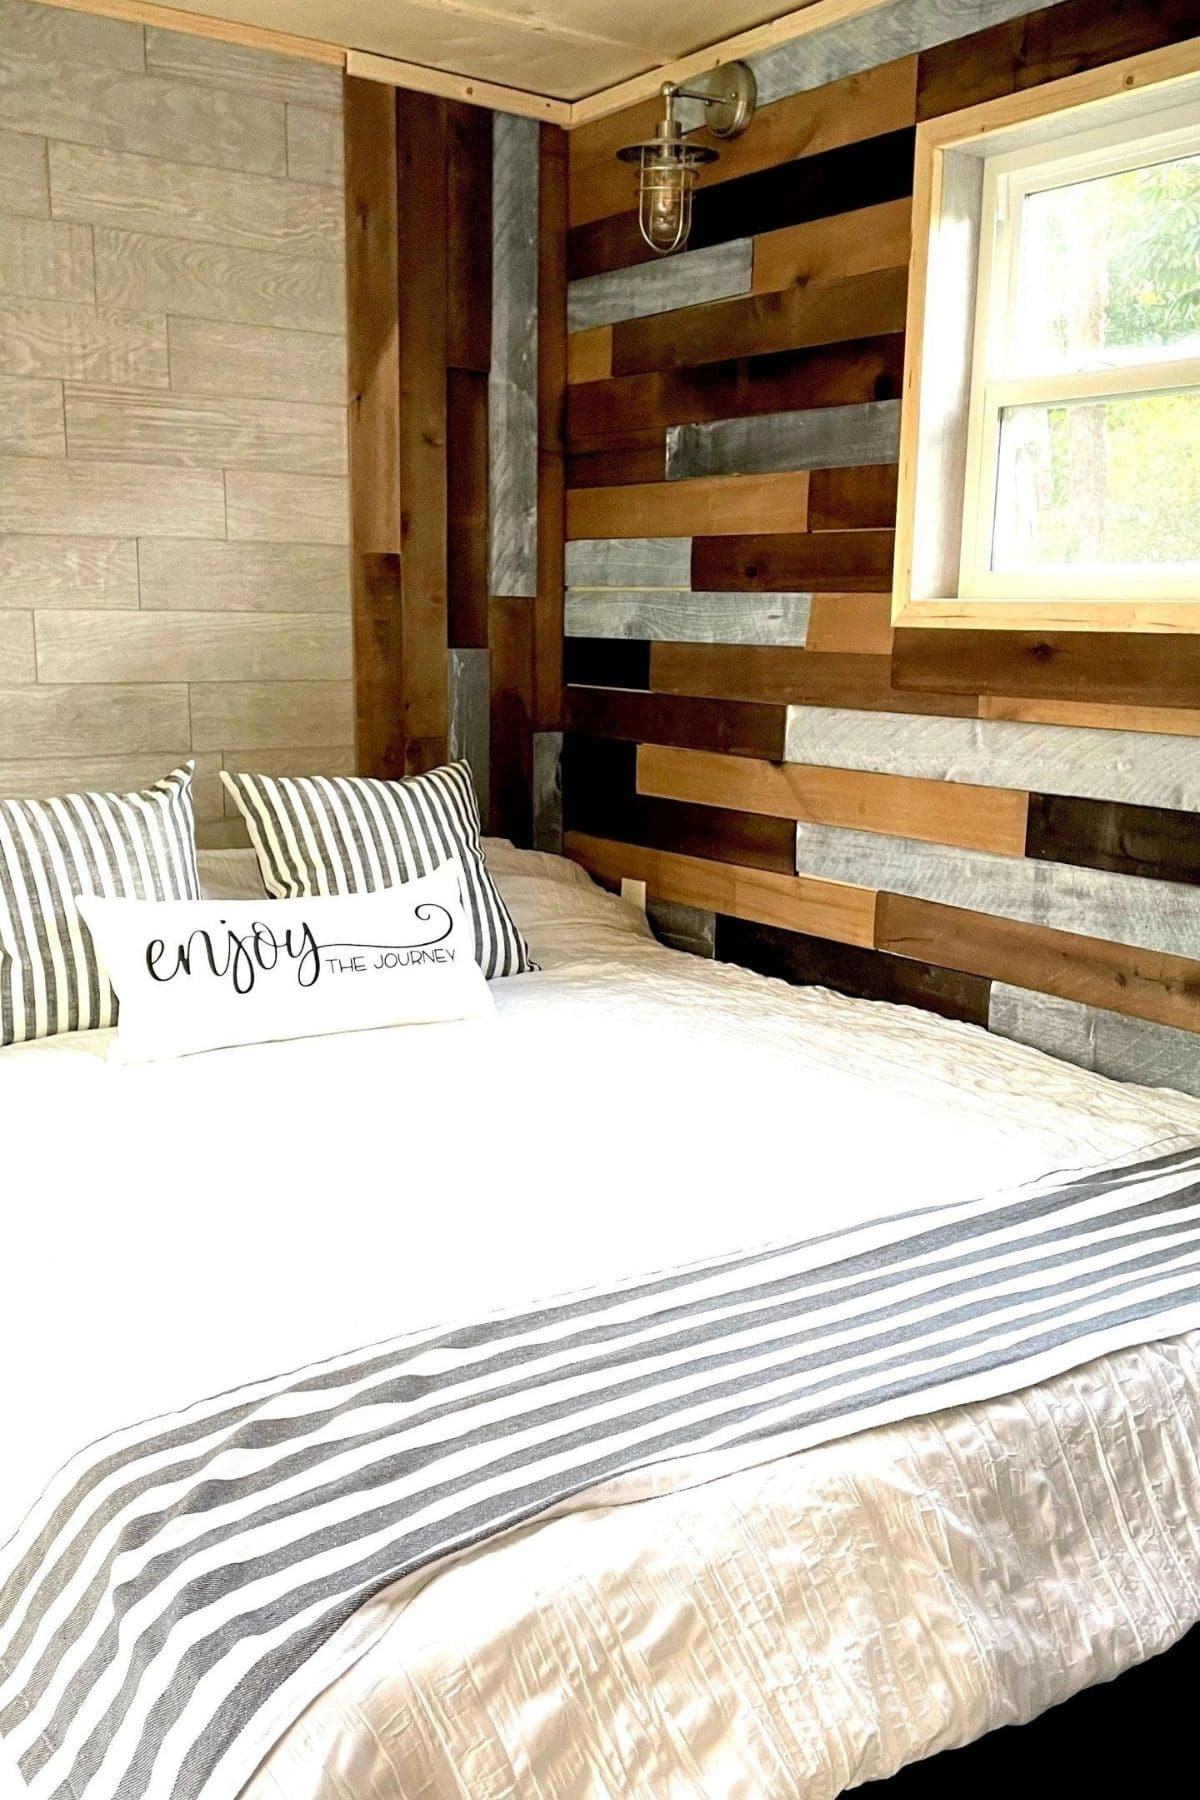 white and gray striped linens on bed next to reclaimed wood wall with window